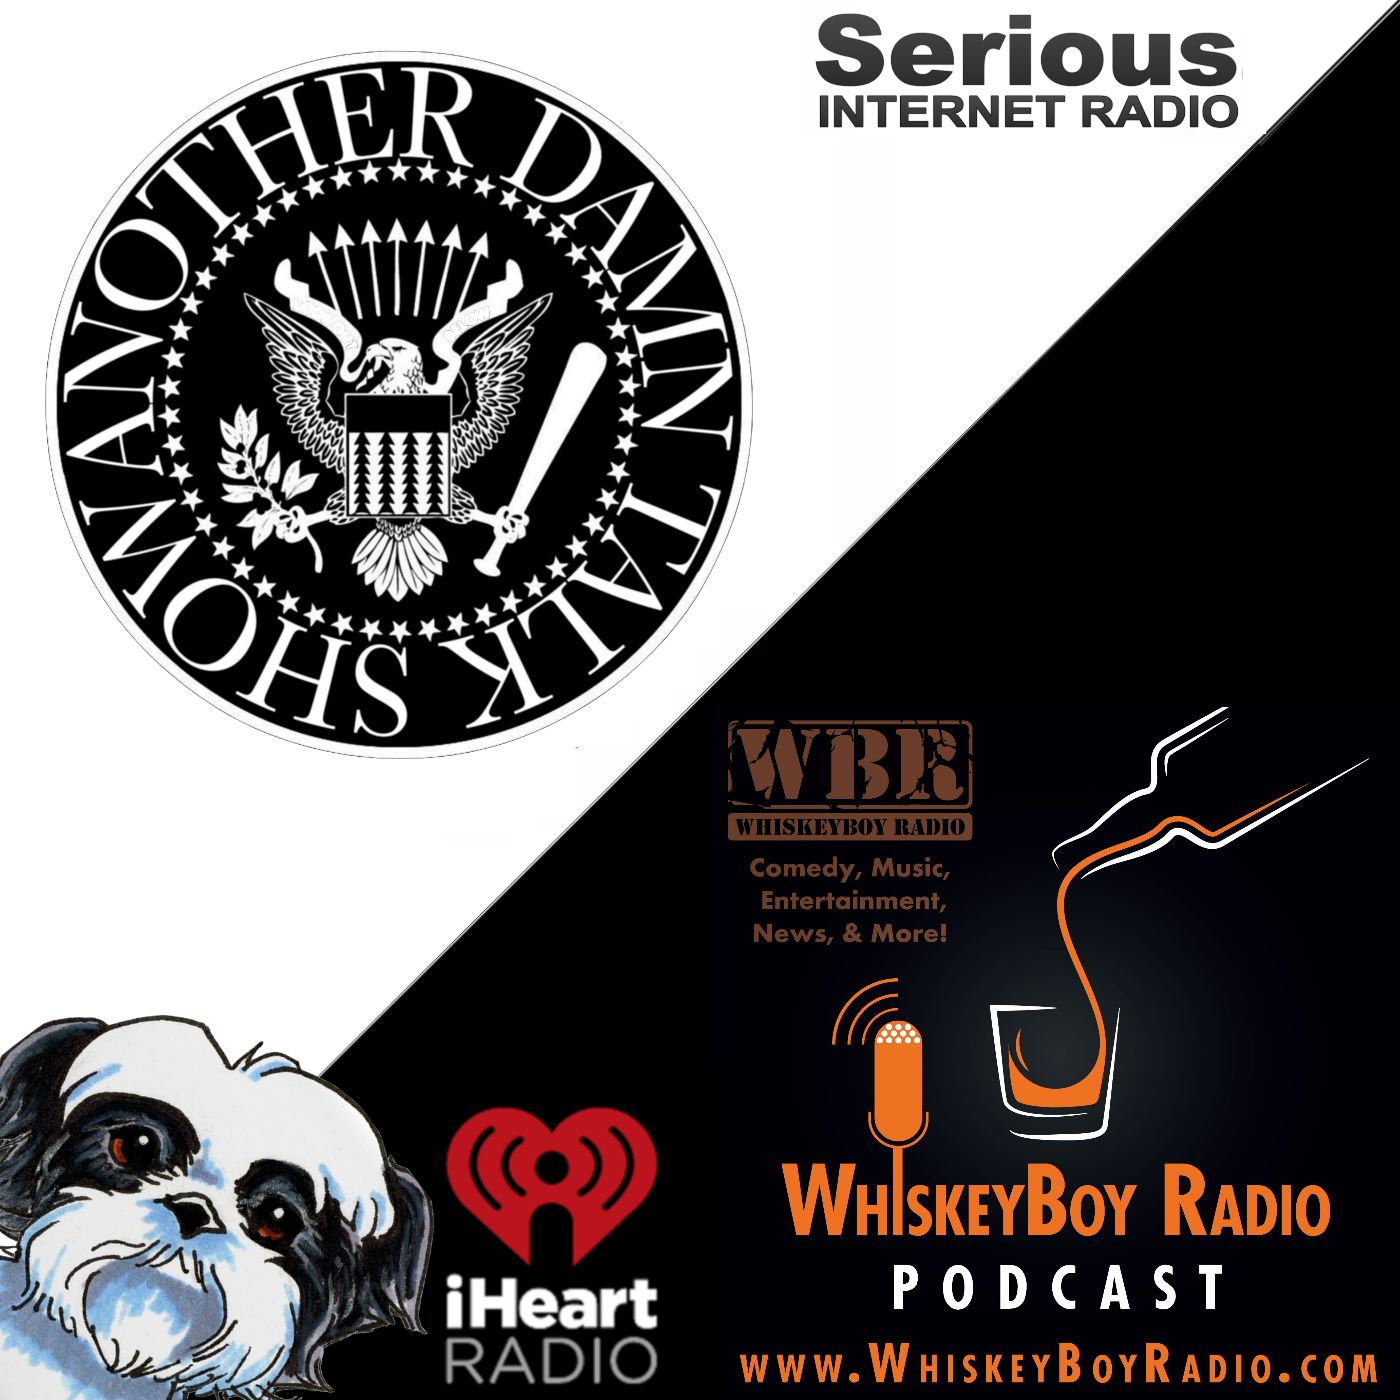 whiskeyboy and adts-serious-iheart.jpg